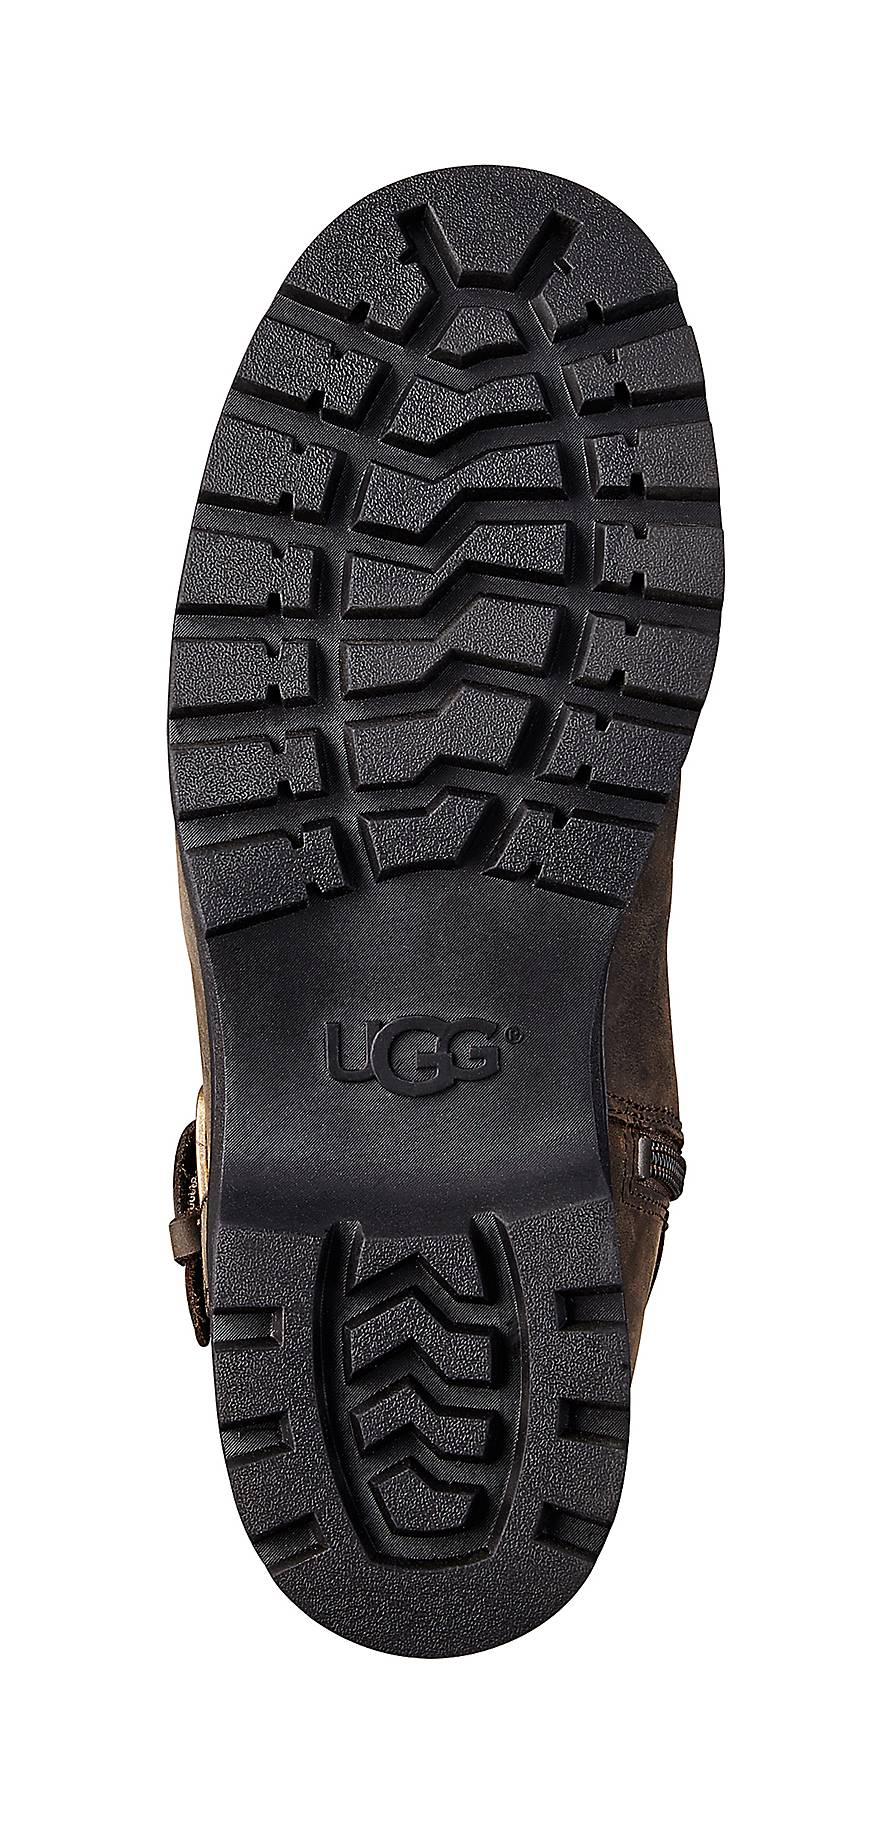 ugg boots unter 100 euro